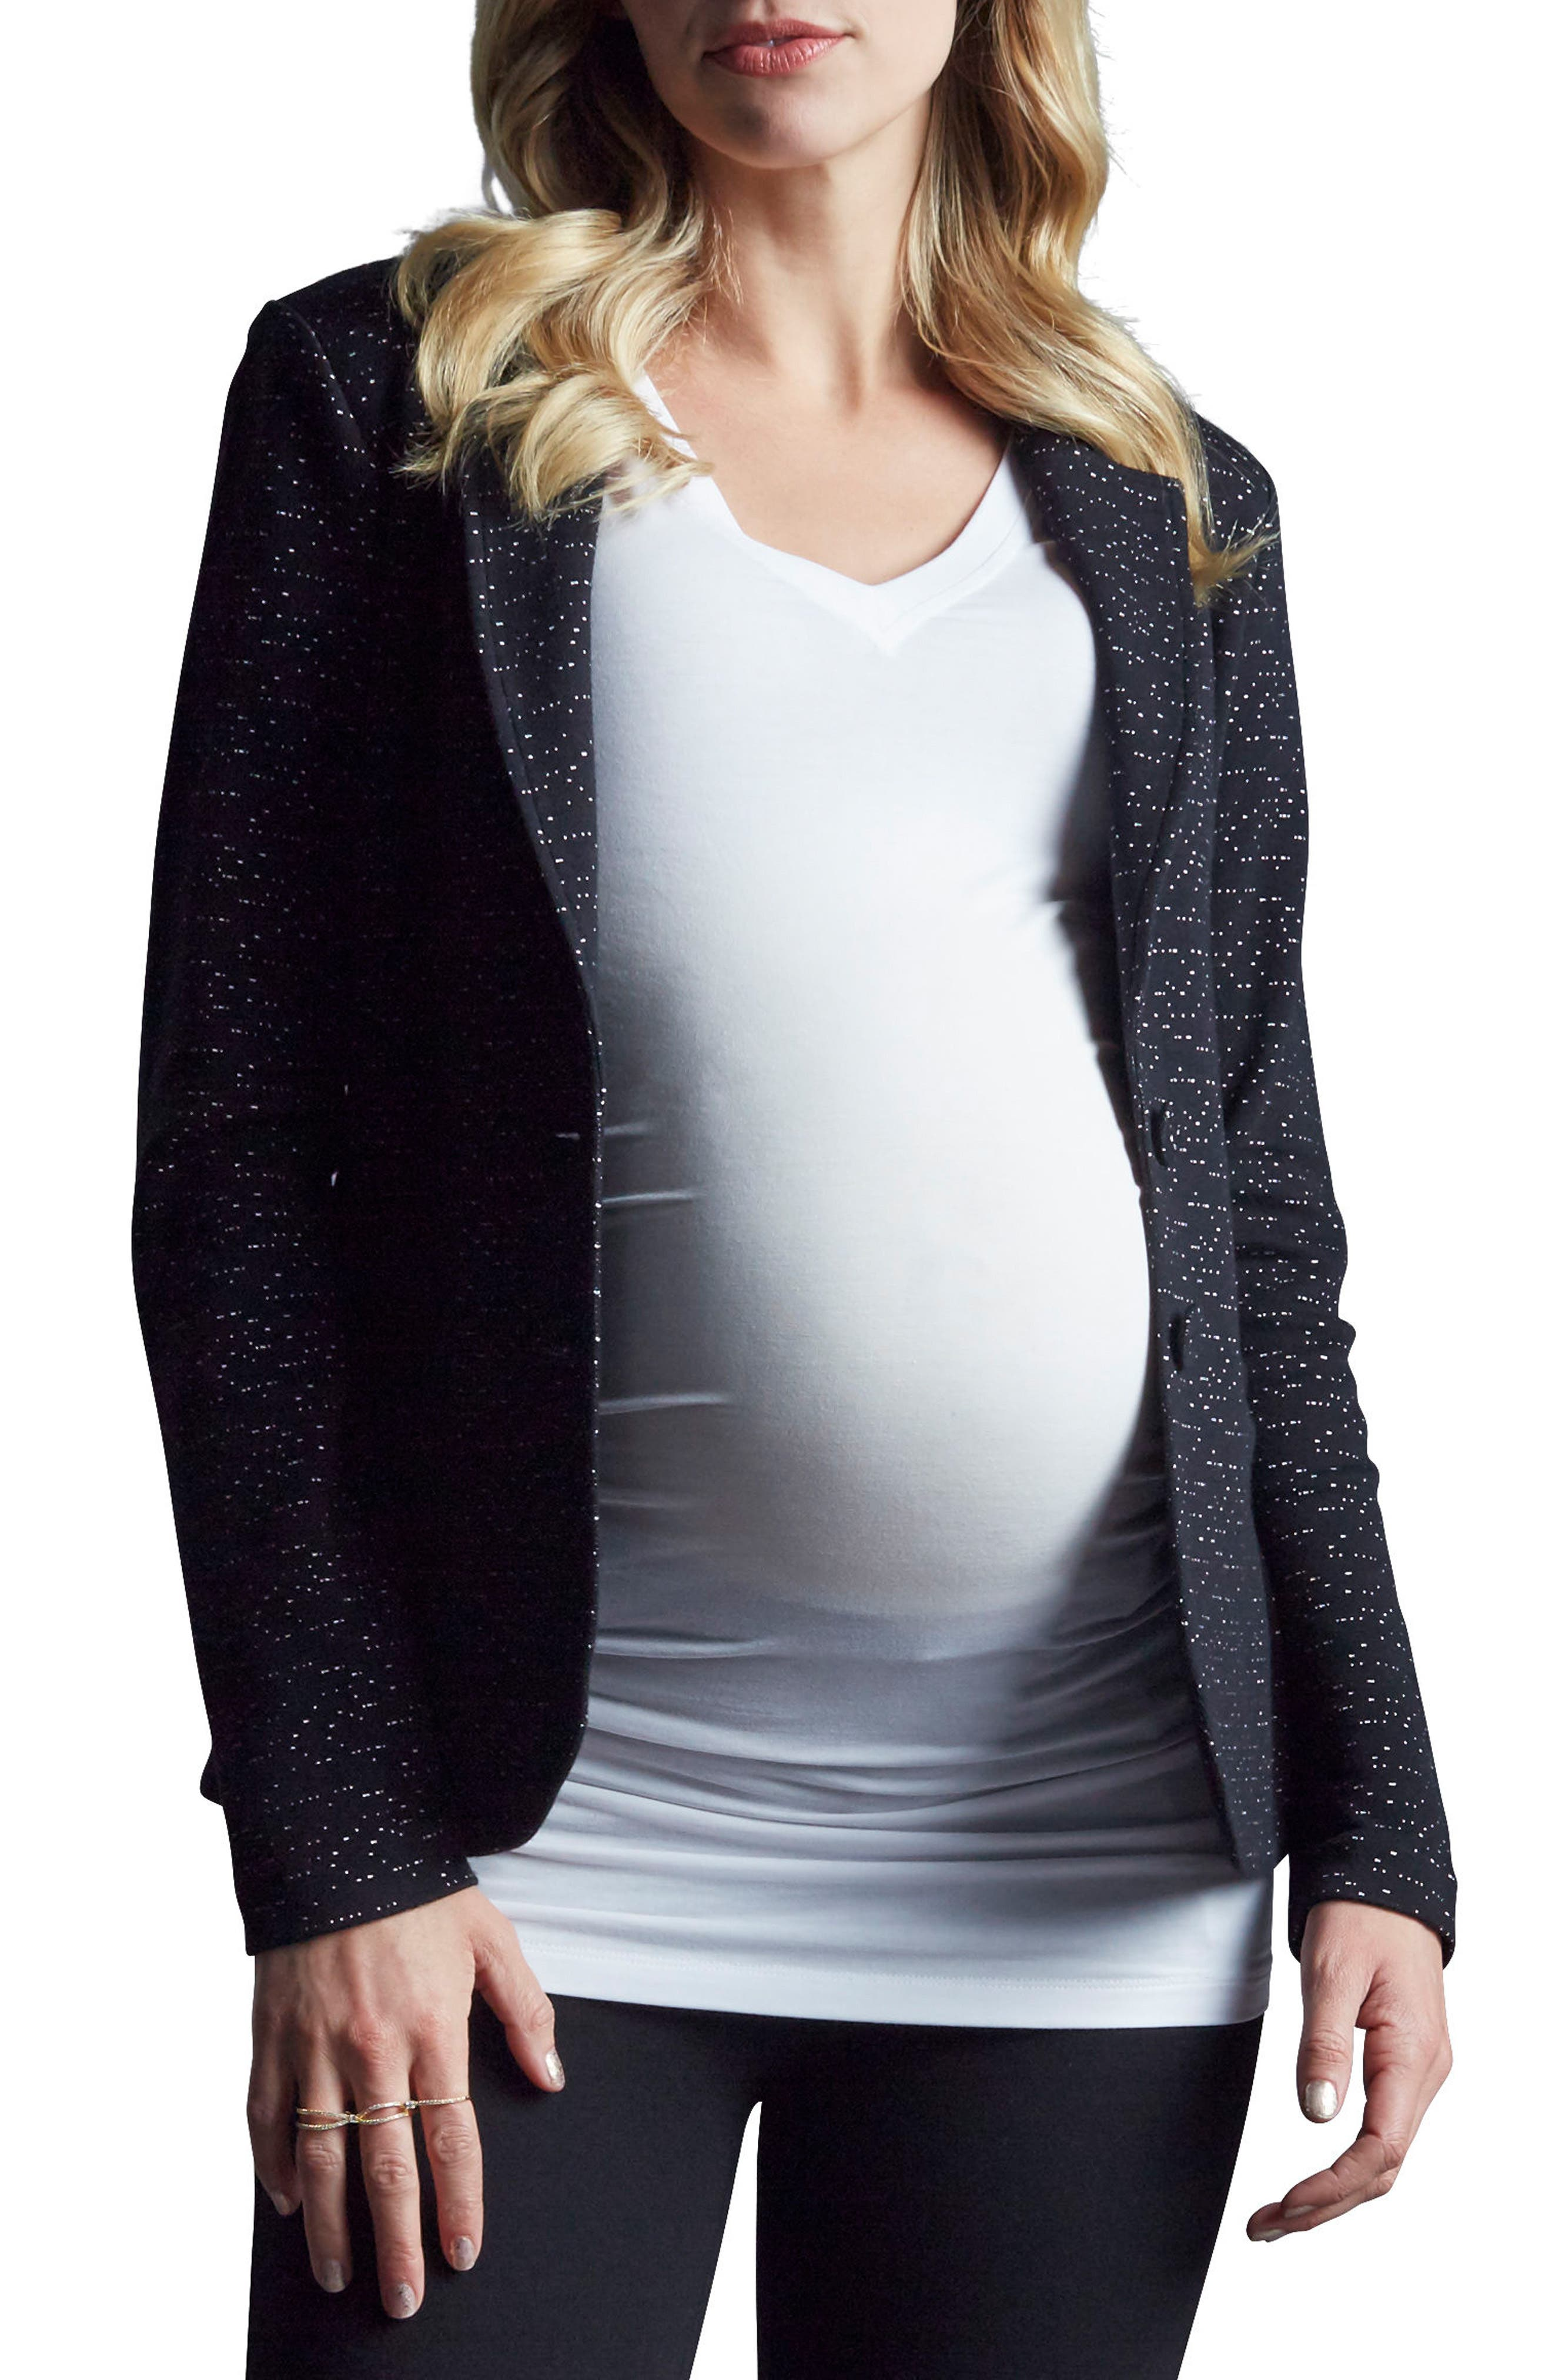 Essential Maternity Blazer,                         Main,                         color, Black Space Dye Speckle